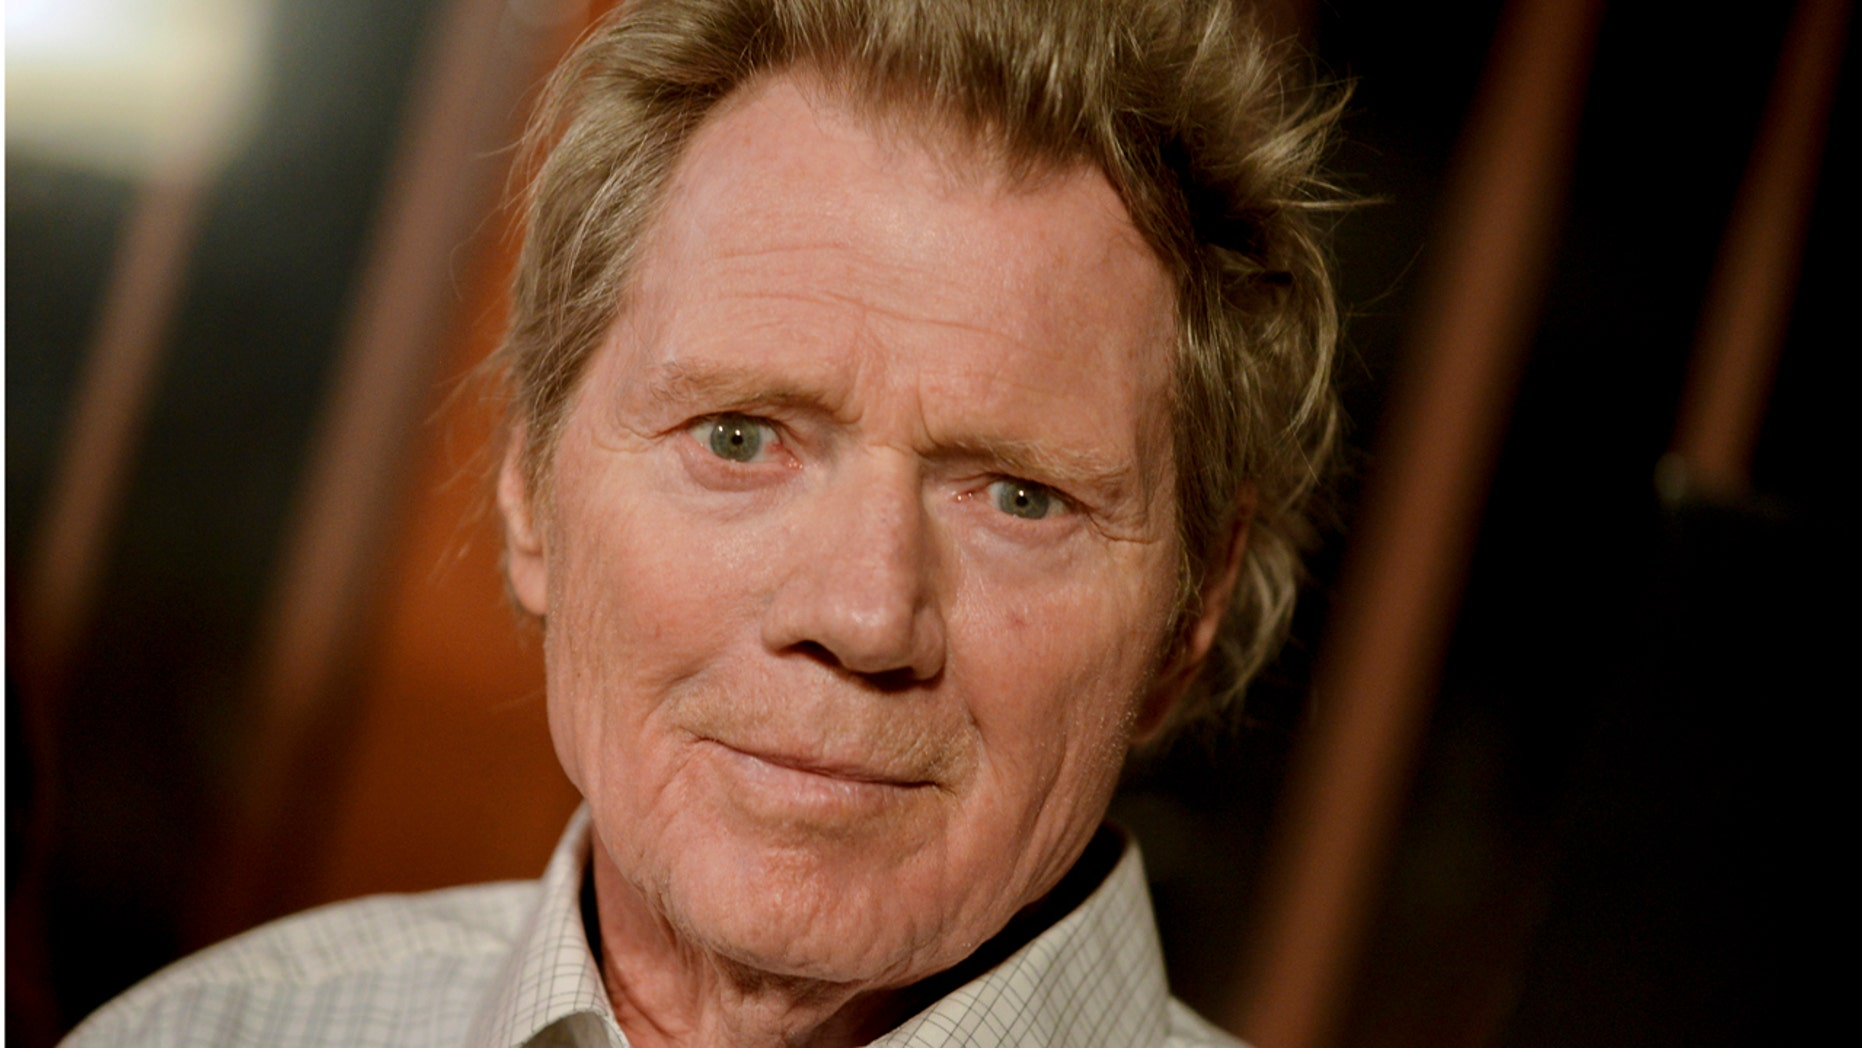 """FILE - In this Sept 16, 2014 file photo, Michael Parks arrives at the LA Premiere Of """"Tusk"""" in Los Angeles. Michael Parks, a prolific character actor and a favorite of directors Quentin Tarantino and Kevin Smith, died Tuesday, May 10, 2017 in Los Angeles. He was 77. (Photo by Richard Shotwell/Invision/AP, File)"""